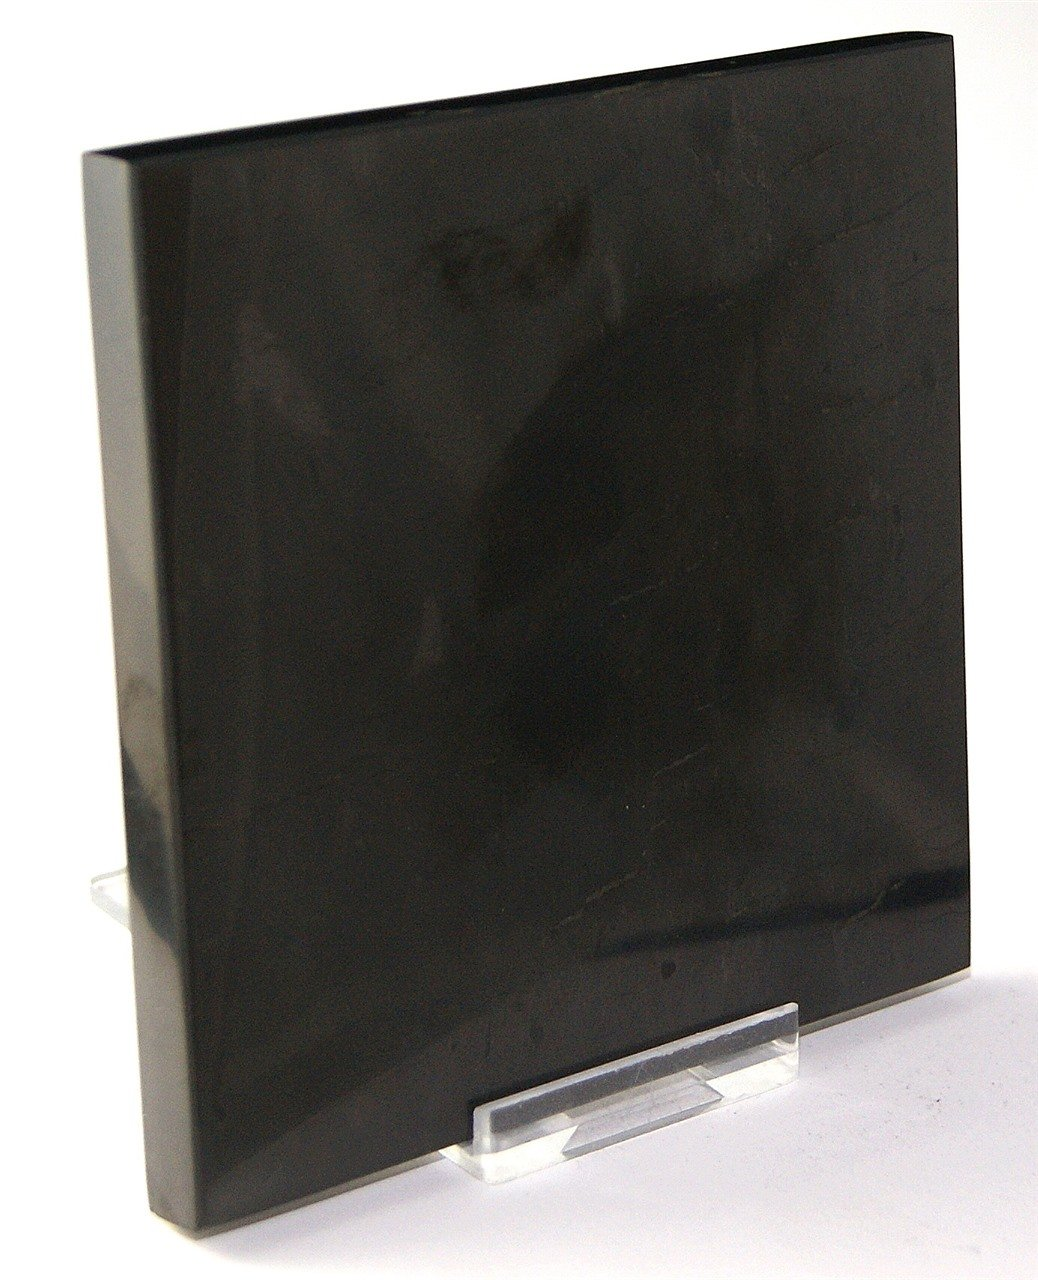 Shungite Shungit 100mm Electromagnetic Protection Plate Coaster Tile - 2 Supplied by Gifts and Guidance